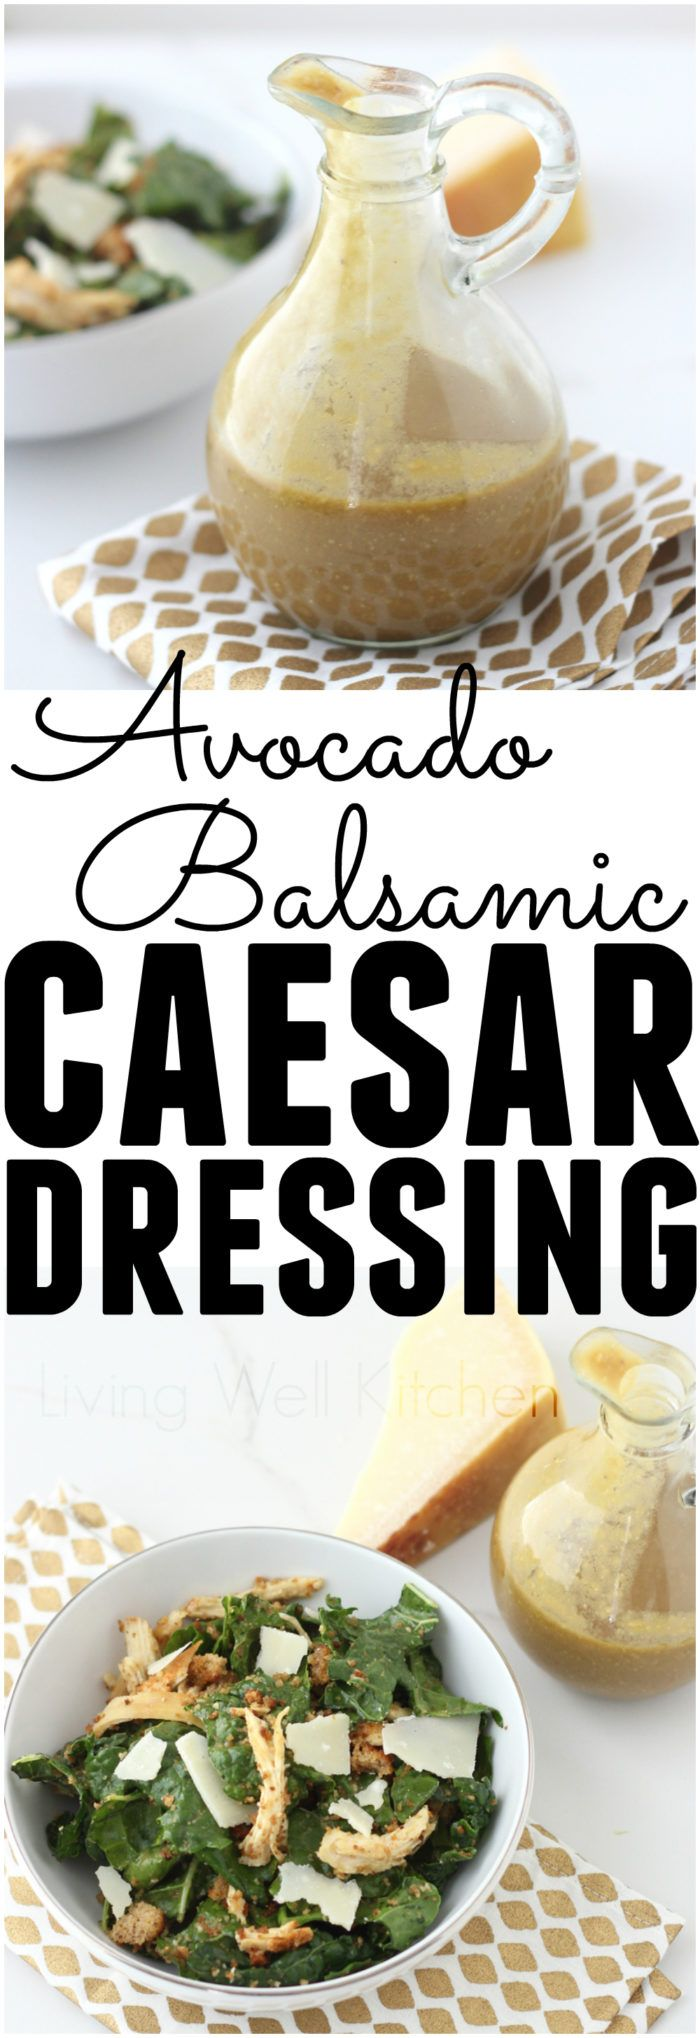 Avocado Balsamic Caesar Dressing from @memeinge is a new version of the classic caesar dressing with all your favorite flavors and a few new additions. This healthy Caesar salad dressing recipe is made without eggs but is still just as rich, creamy and delicious